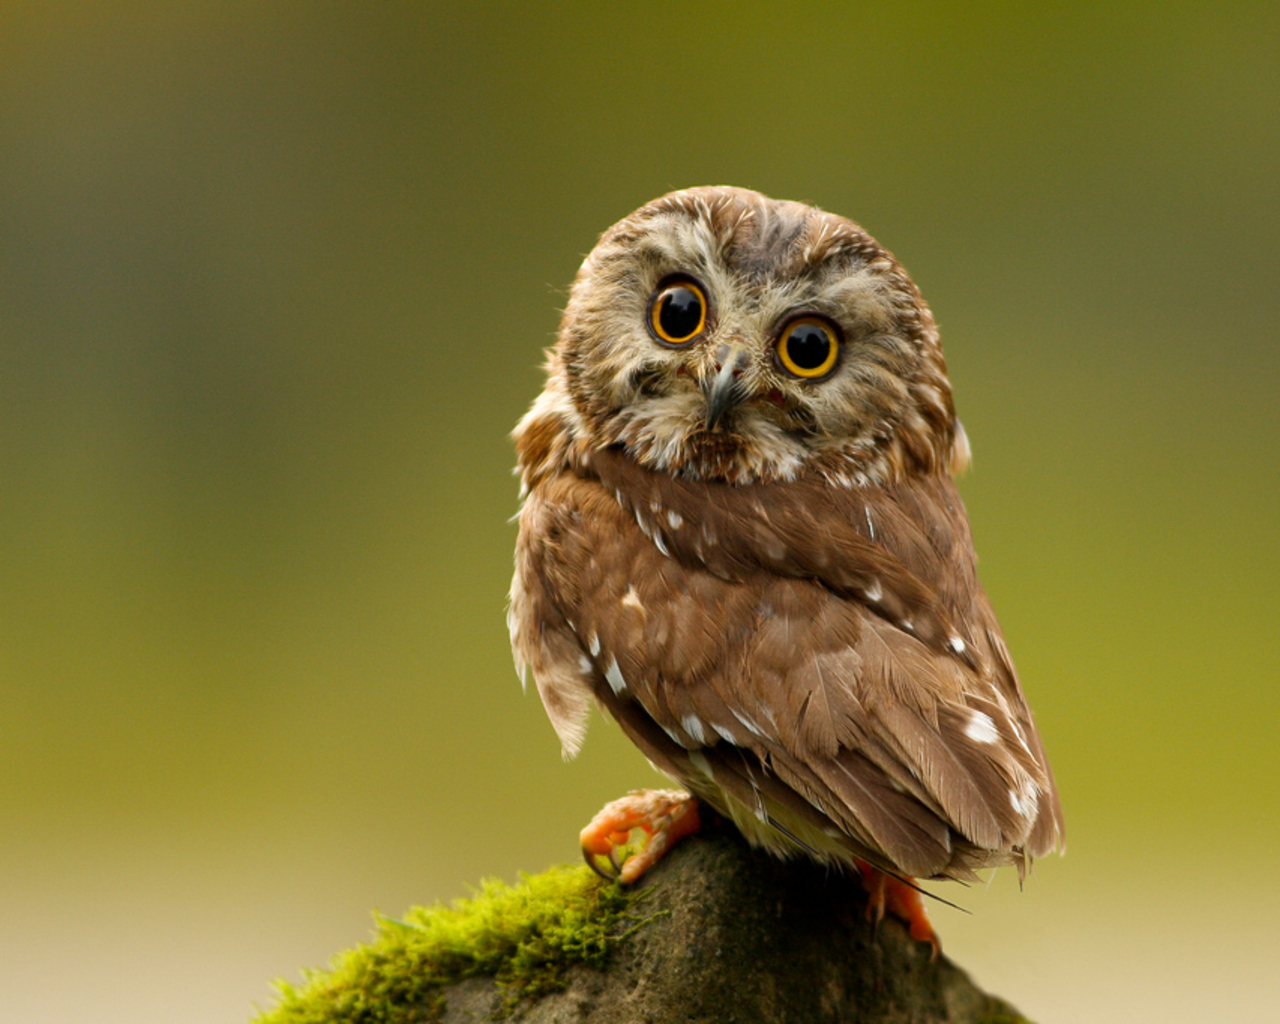 cute owl wallpaper hd 3